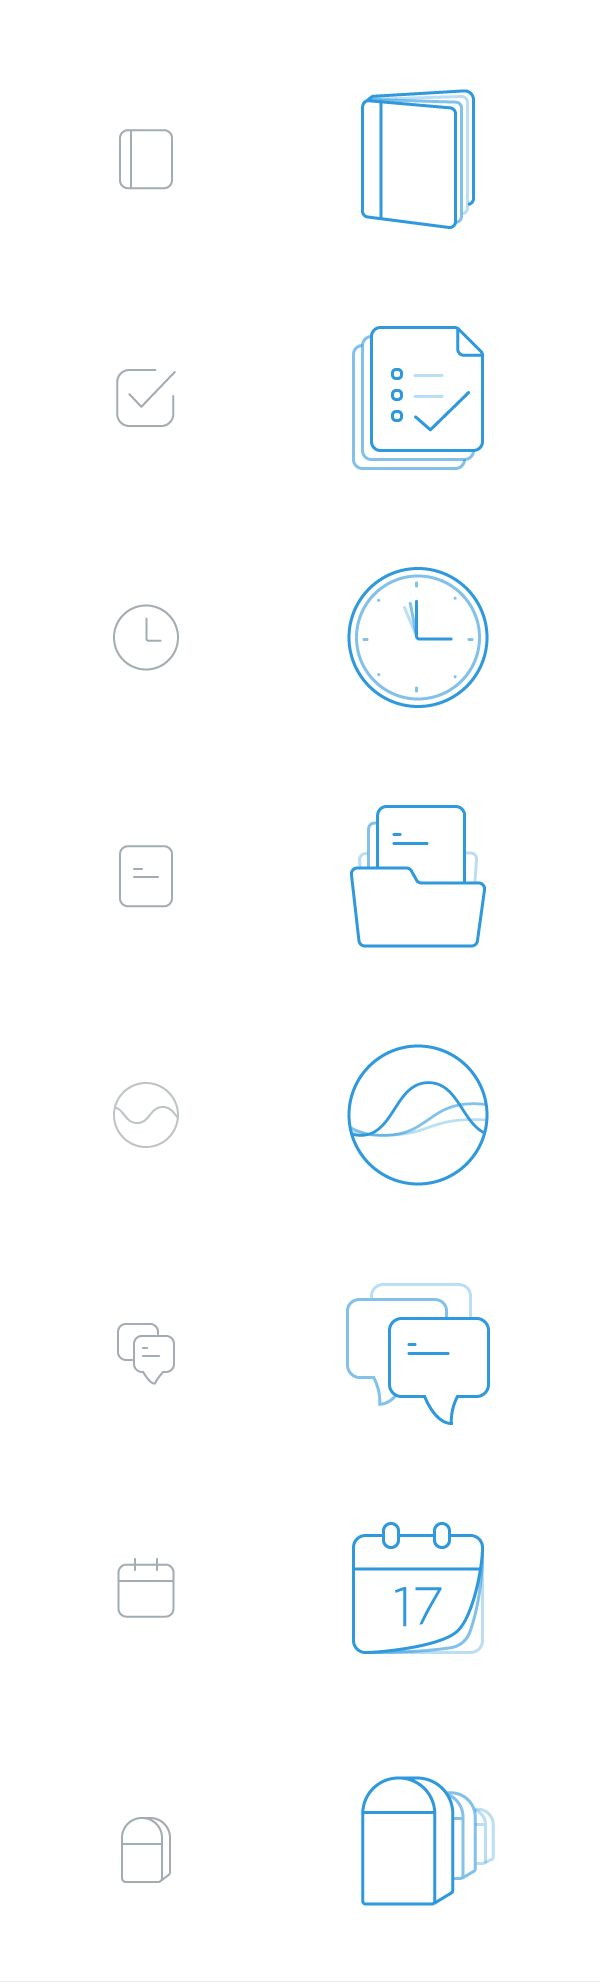 Line icons on Behance